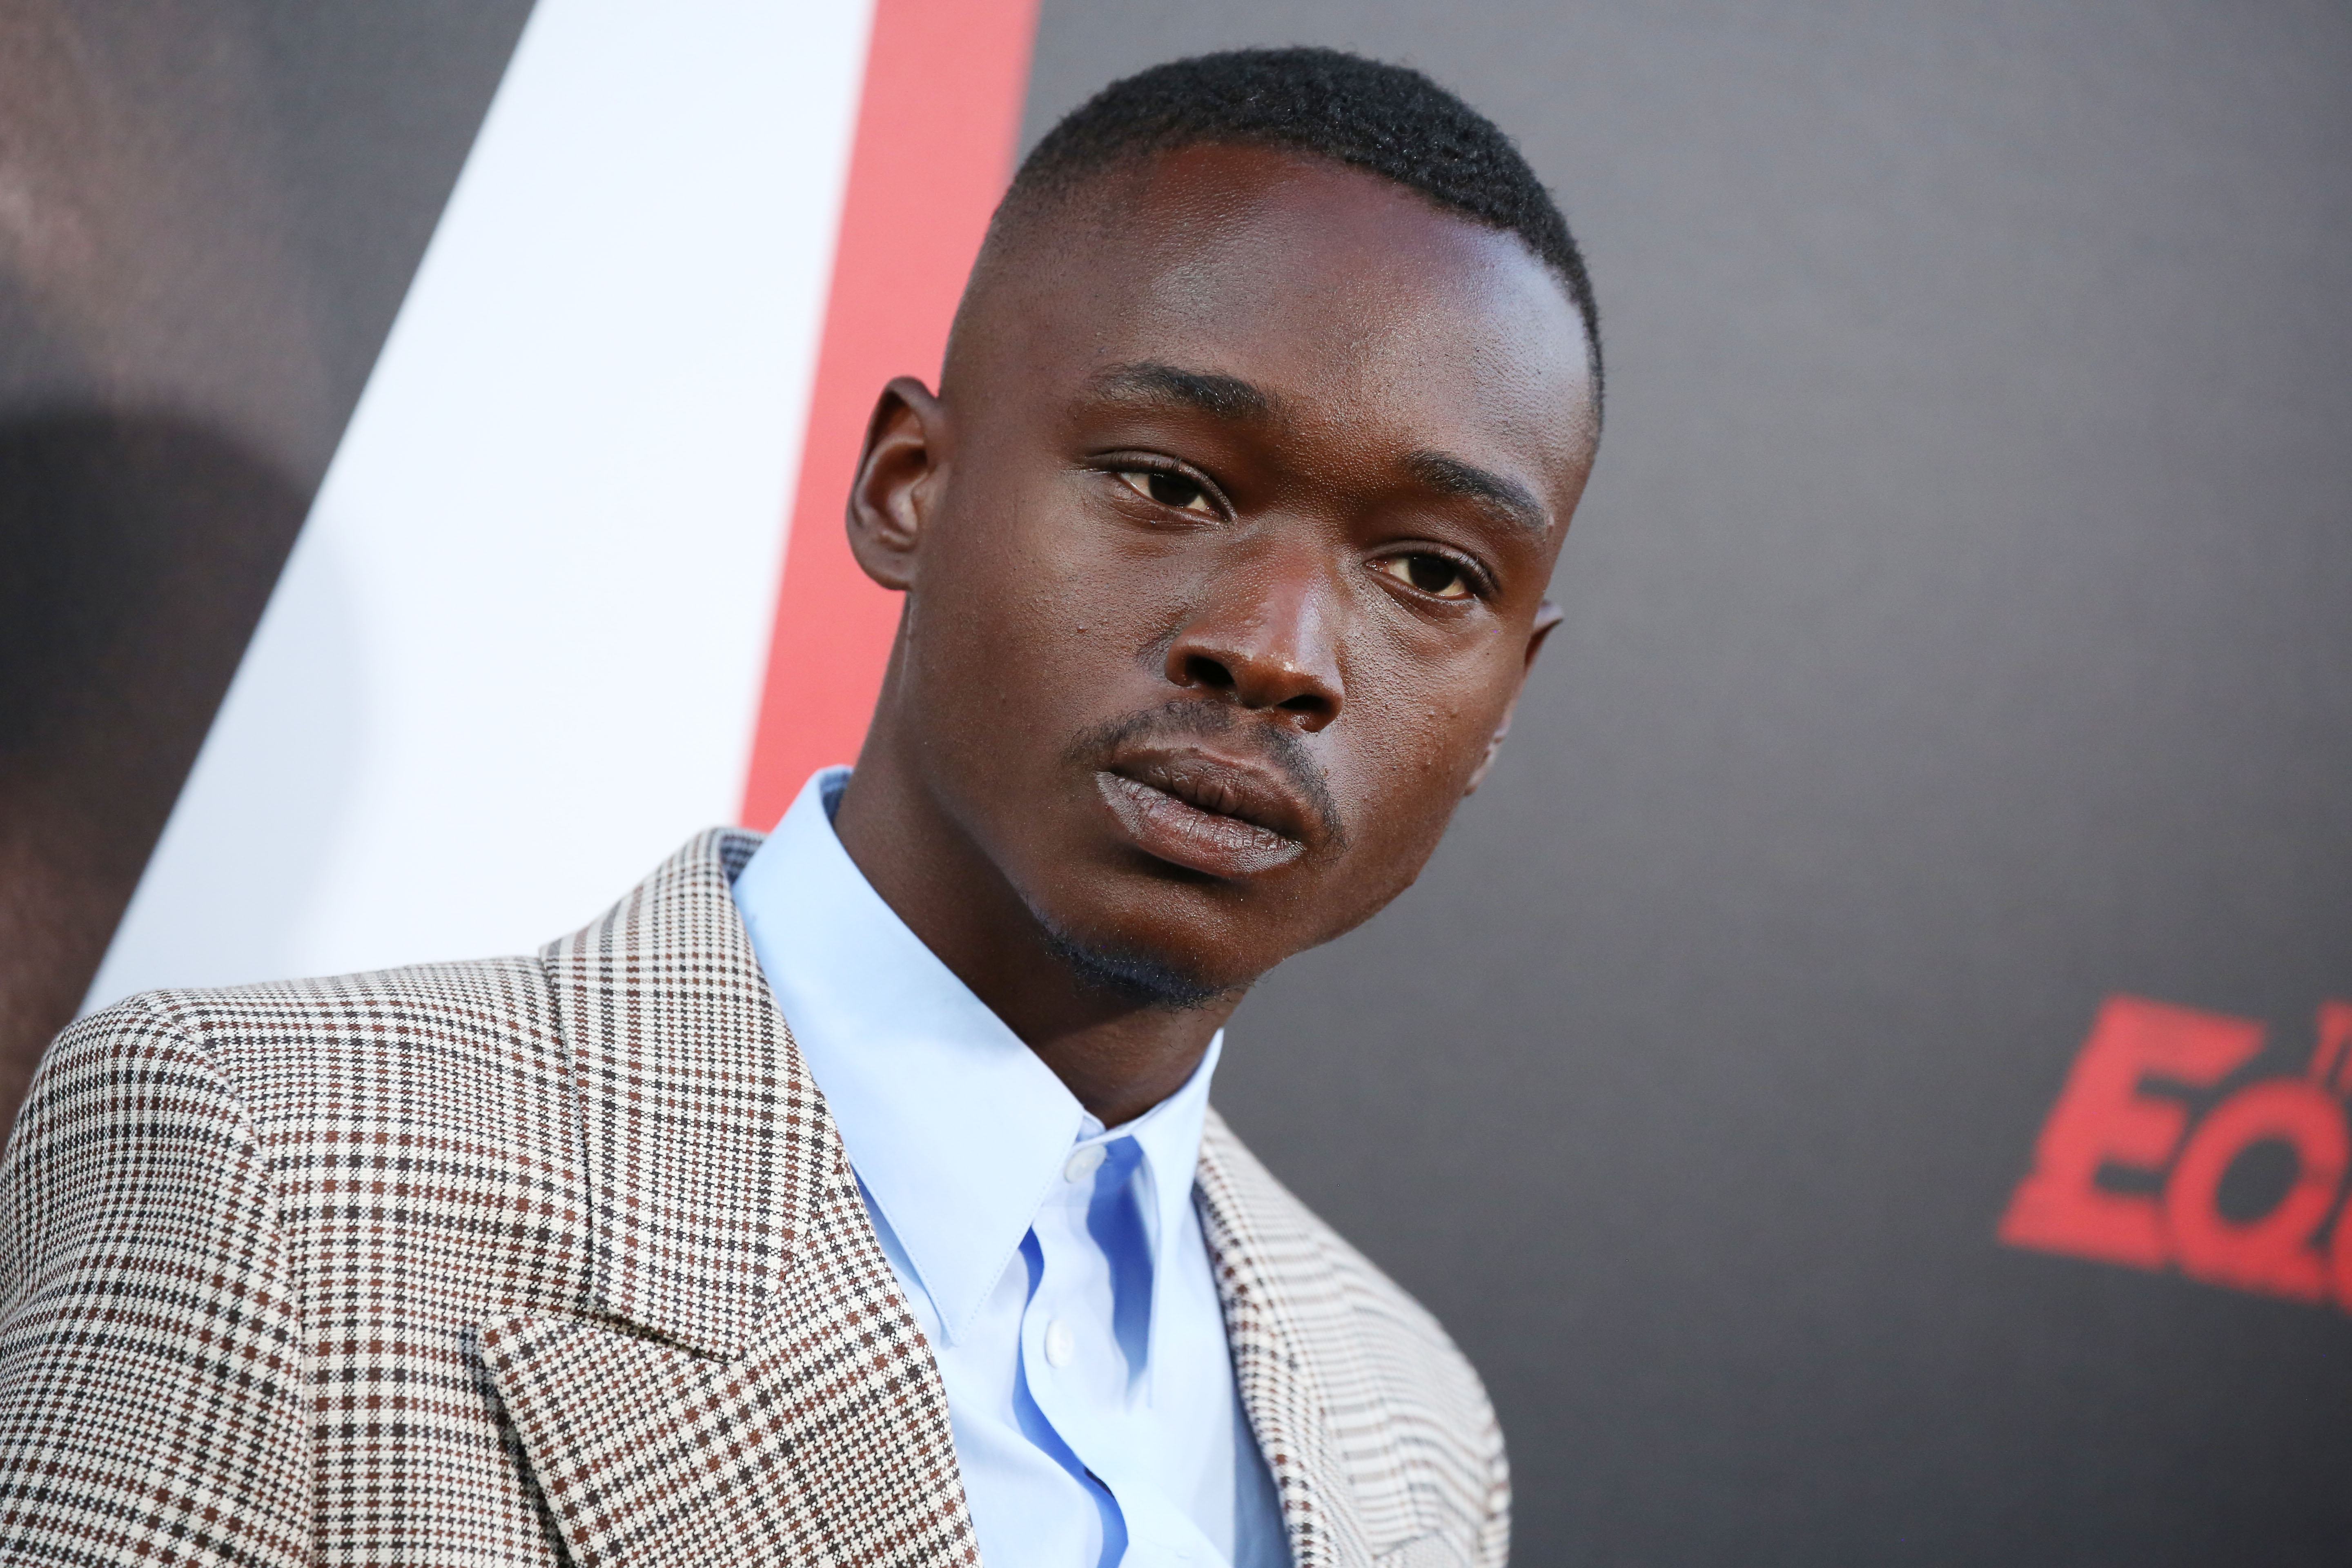 Deadline is exclusively reporting that Ashton Sanders is the latest name to join the cast of the Whitney Houston biopic, I Wanna Dance With Somebody, and will be playing the role of Bobby Brown.